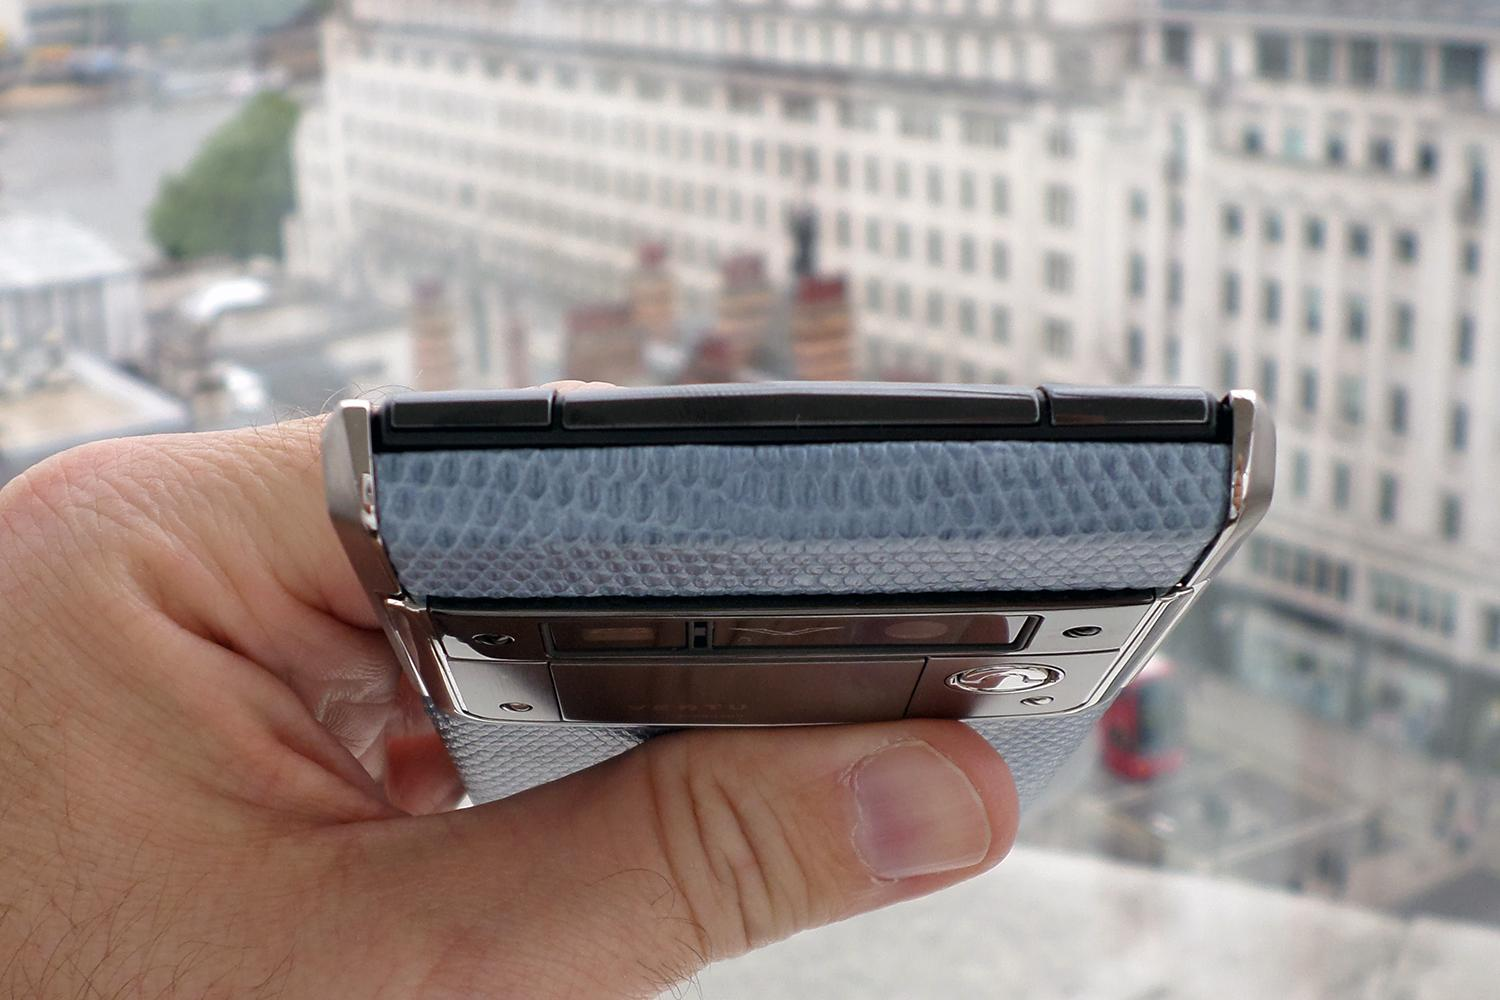 Inserto in pelle di serpente di Vertu Signature Touch